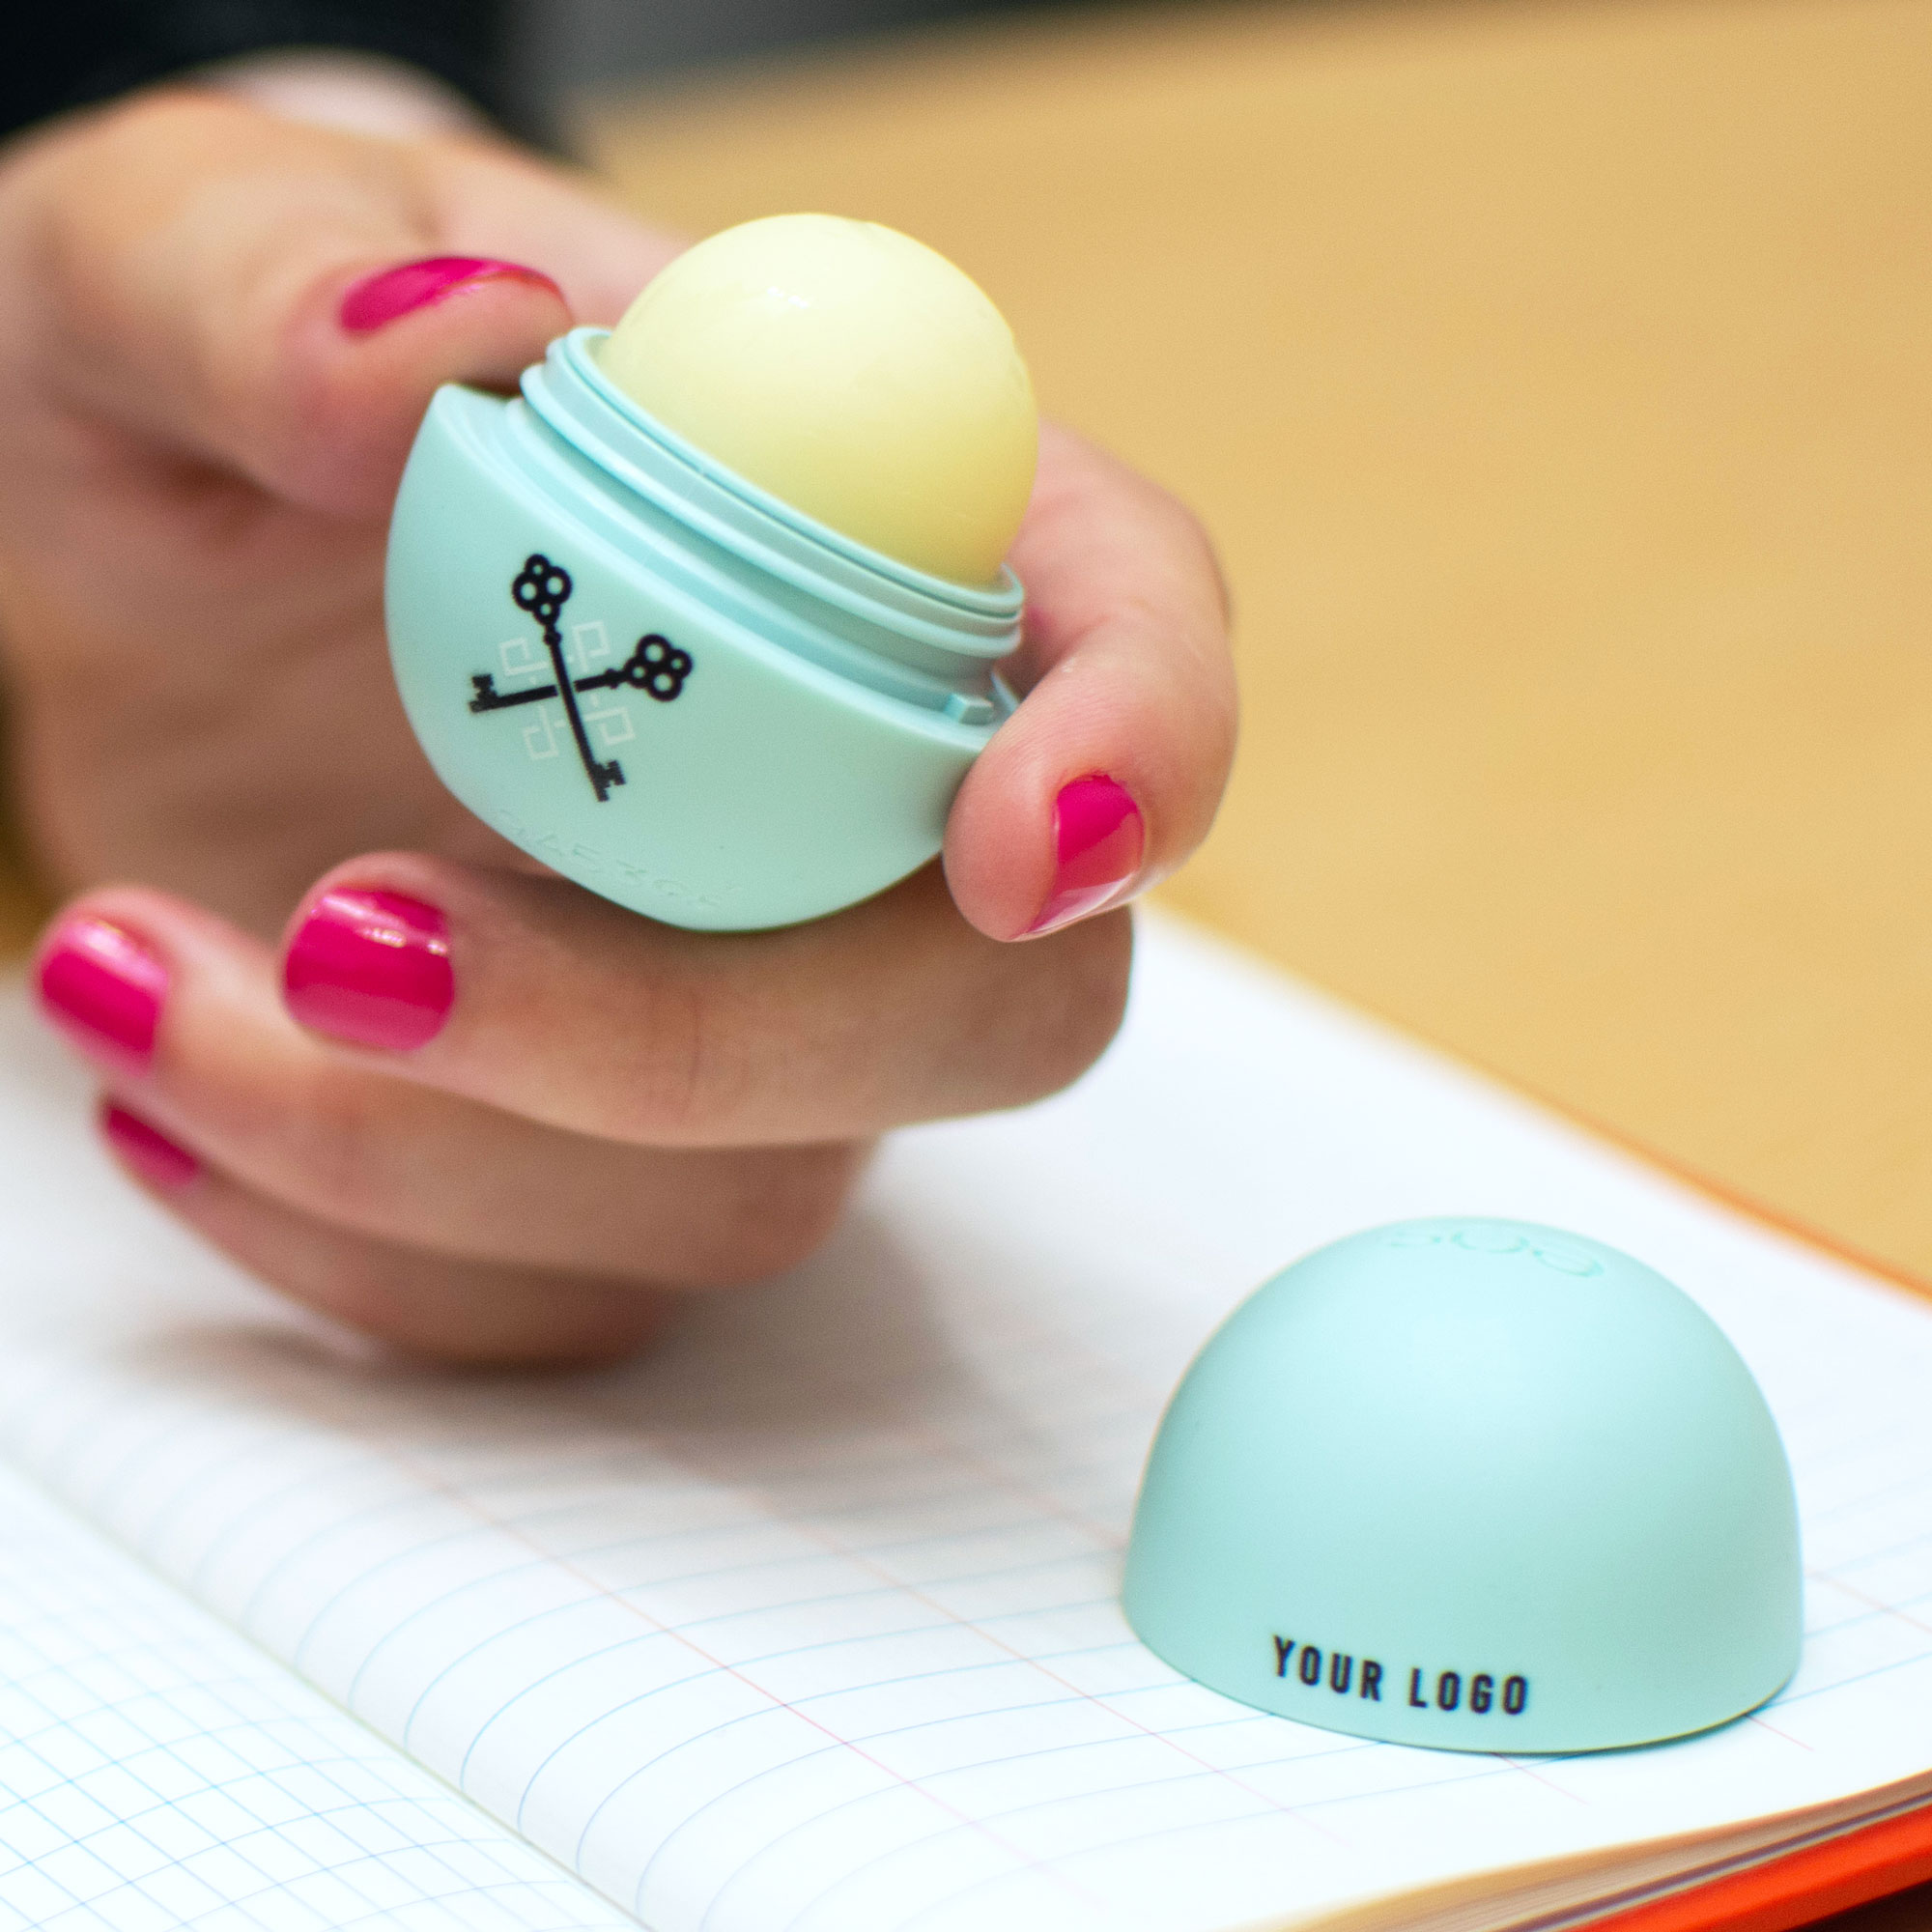 EOS Lip Balm Sweet Mint (open)